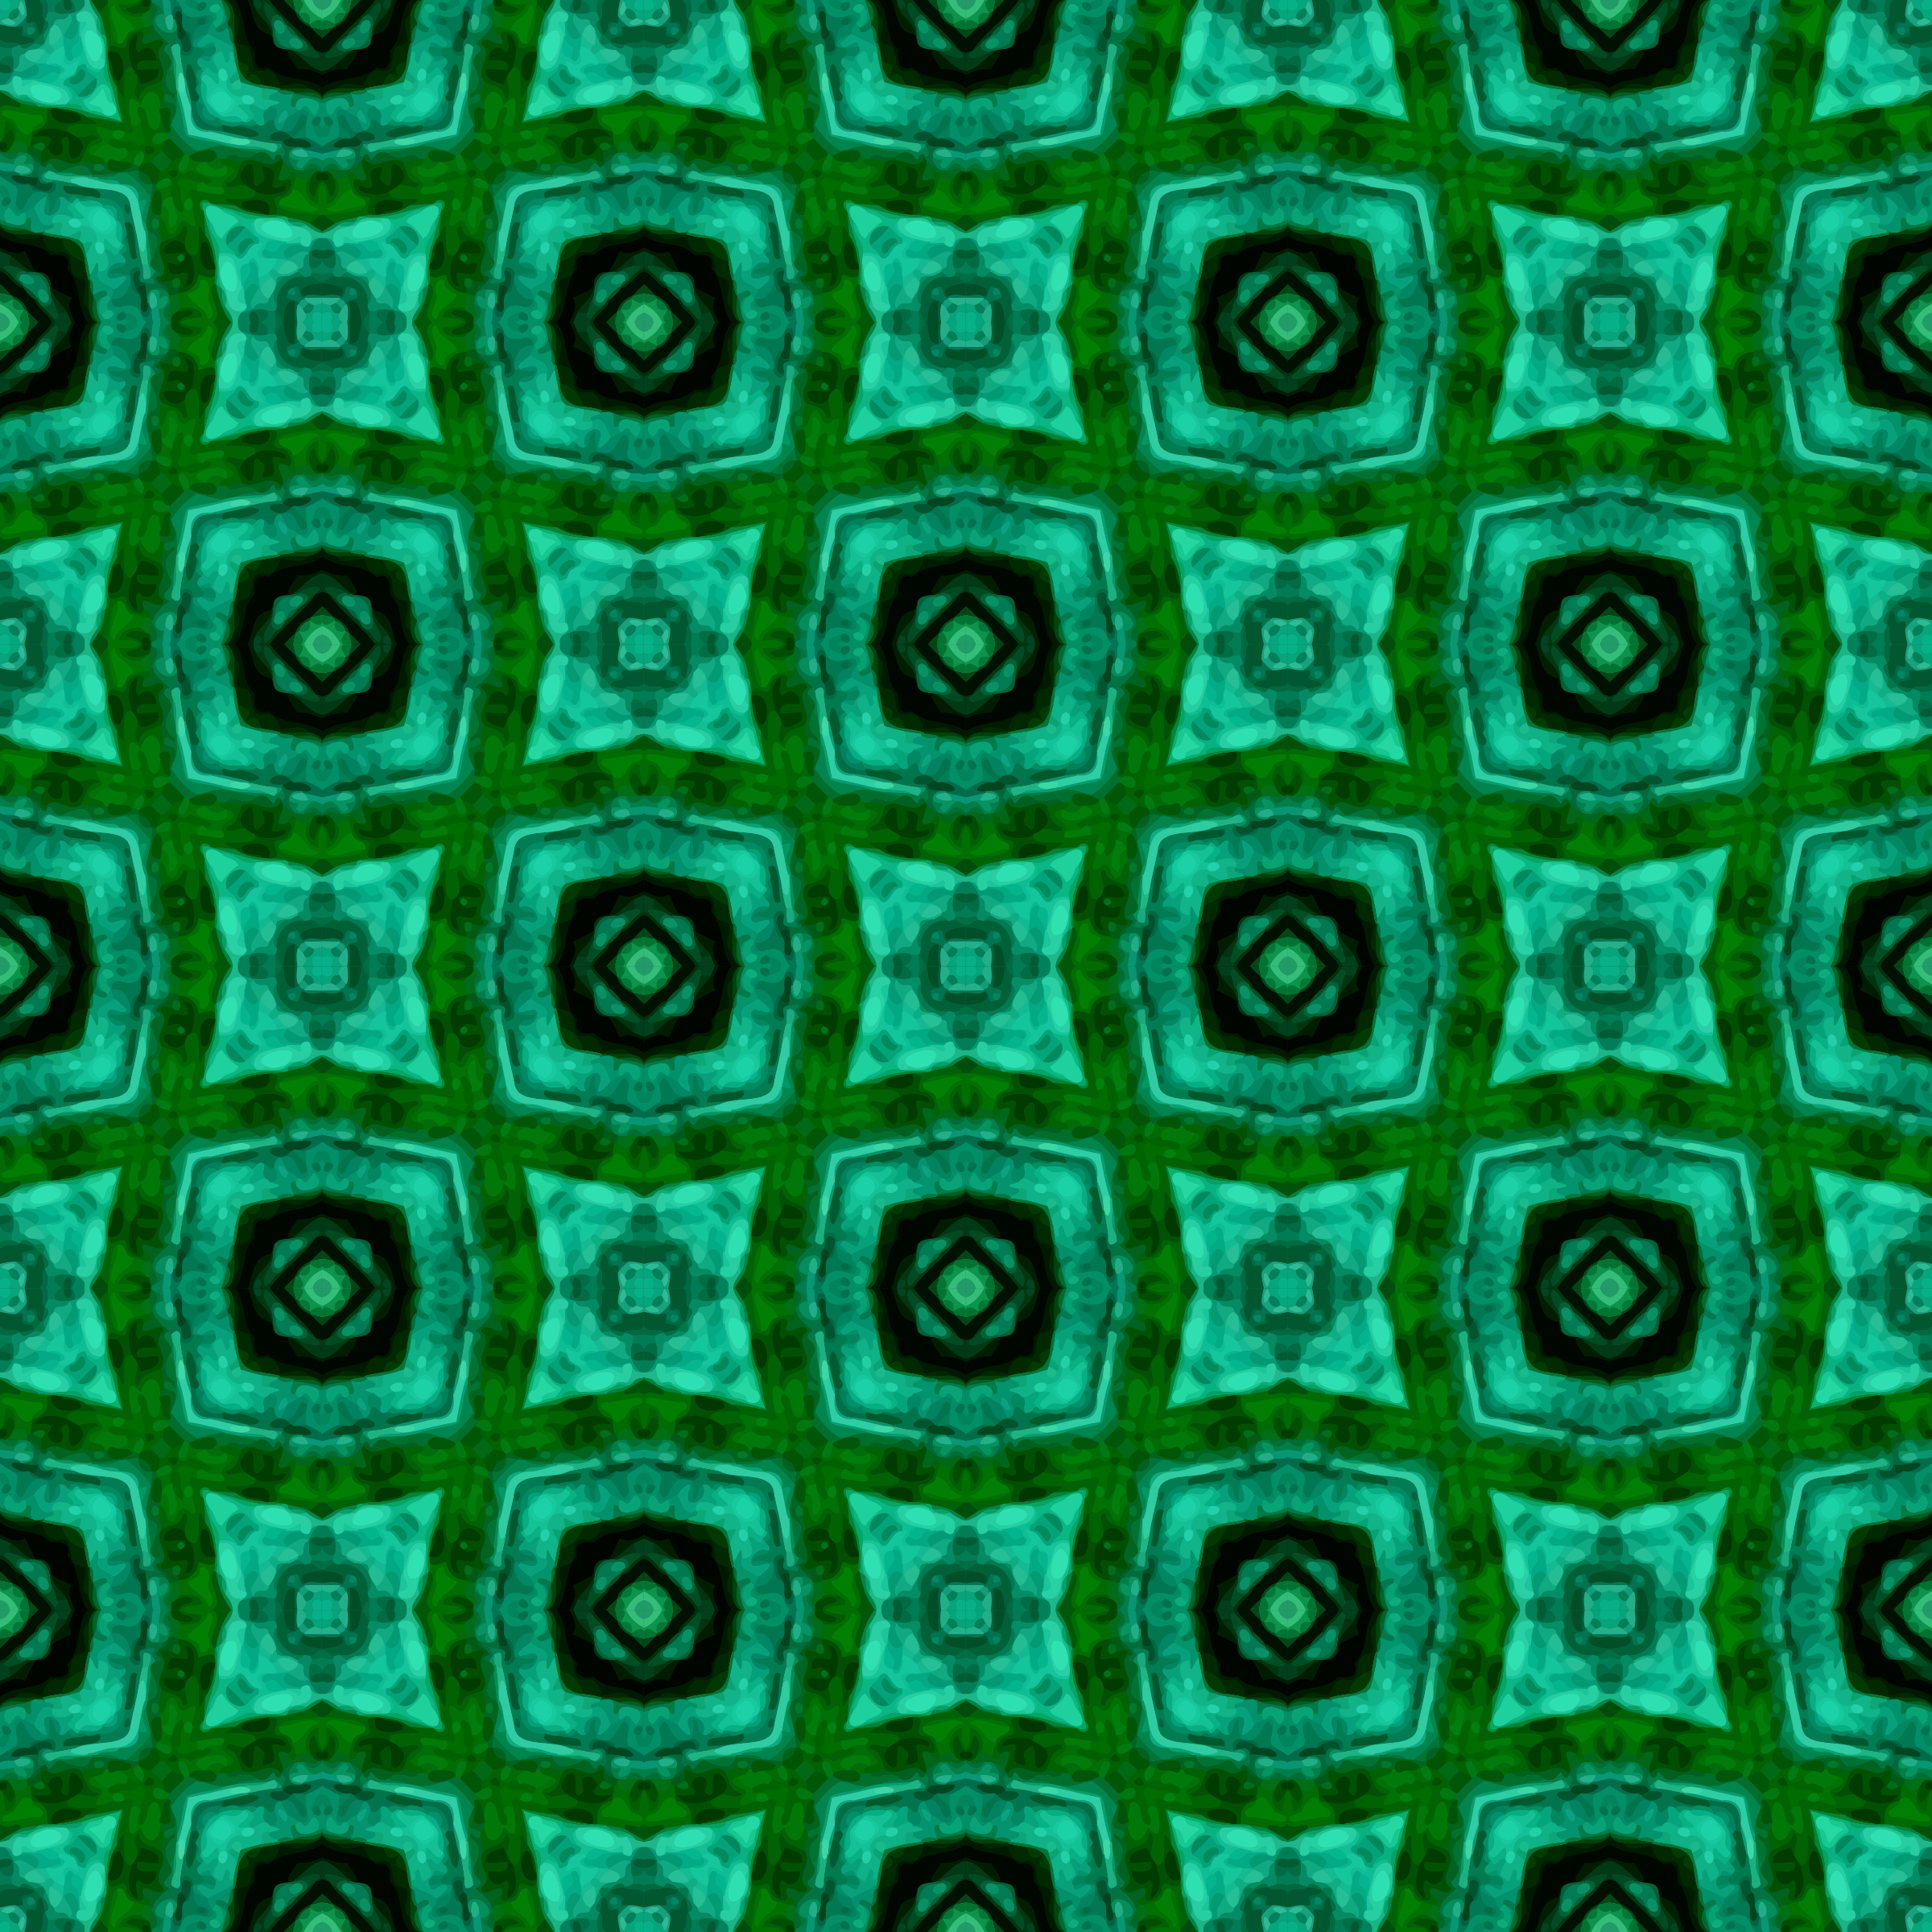 Background pattern 159 (colour 2) by Firkin